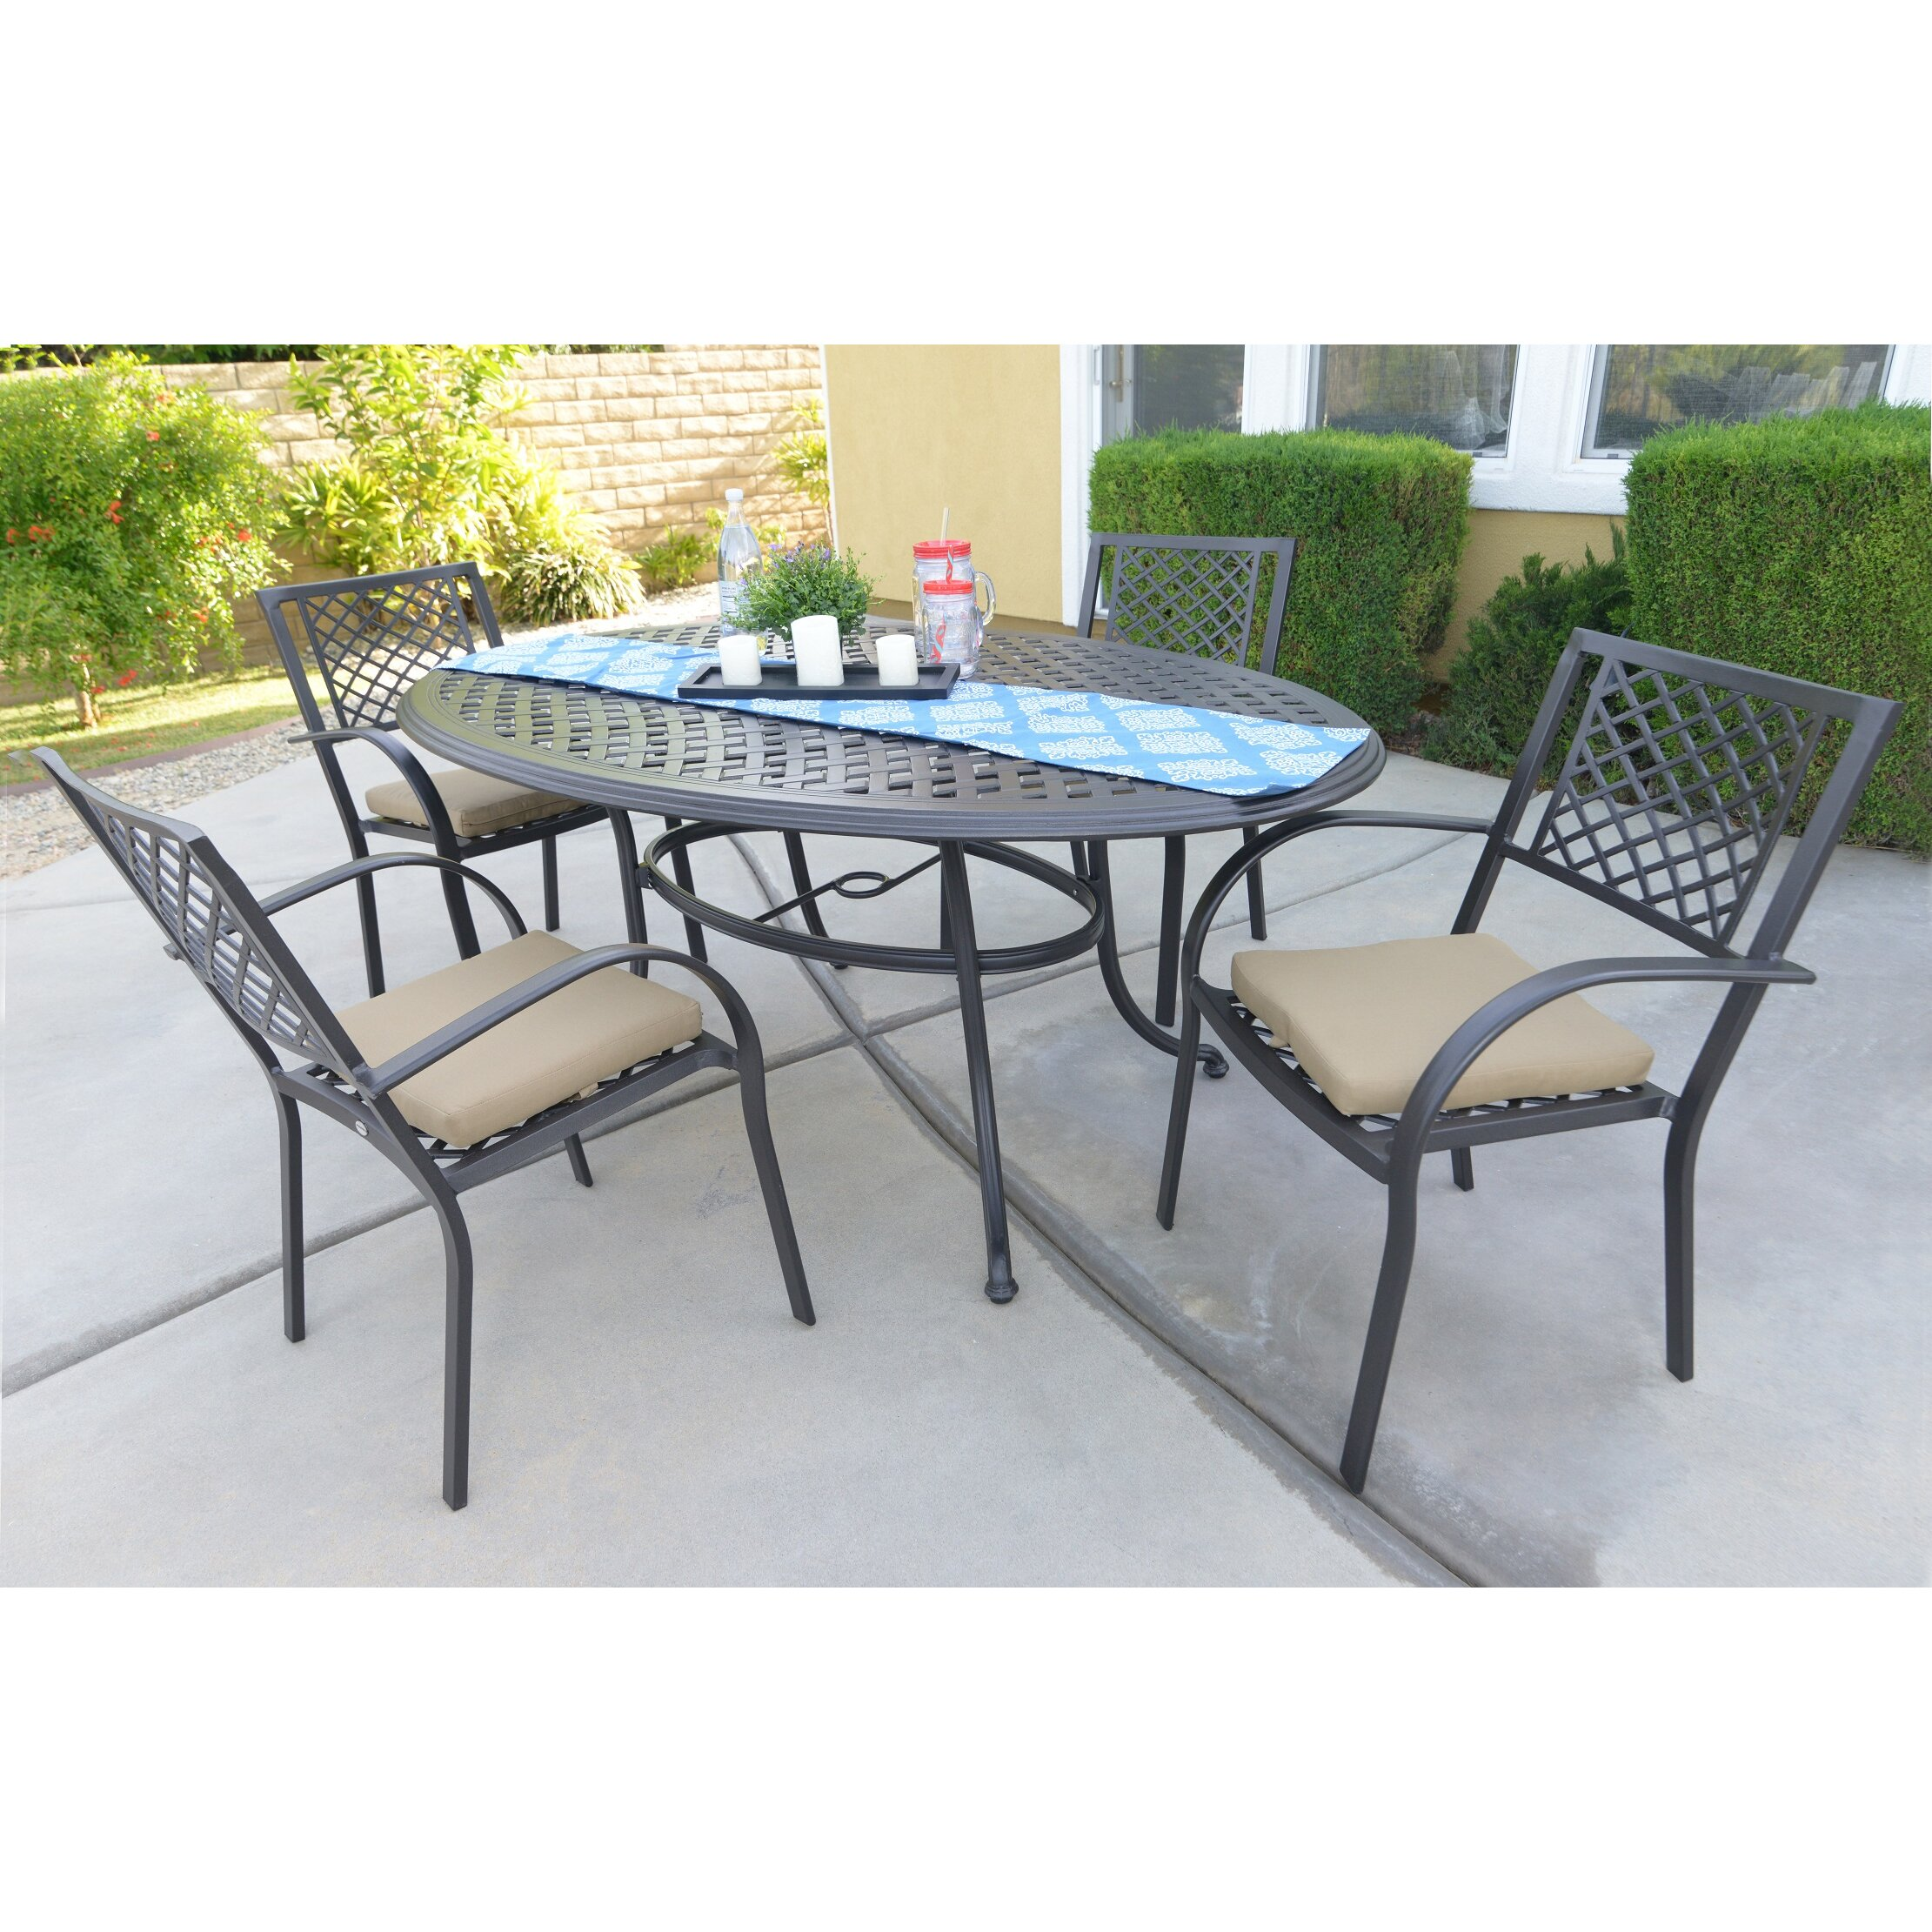 Patio Furniture Miami Outlet Patio Things Ecosmart Brown